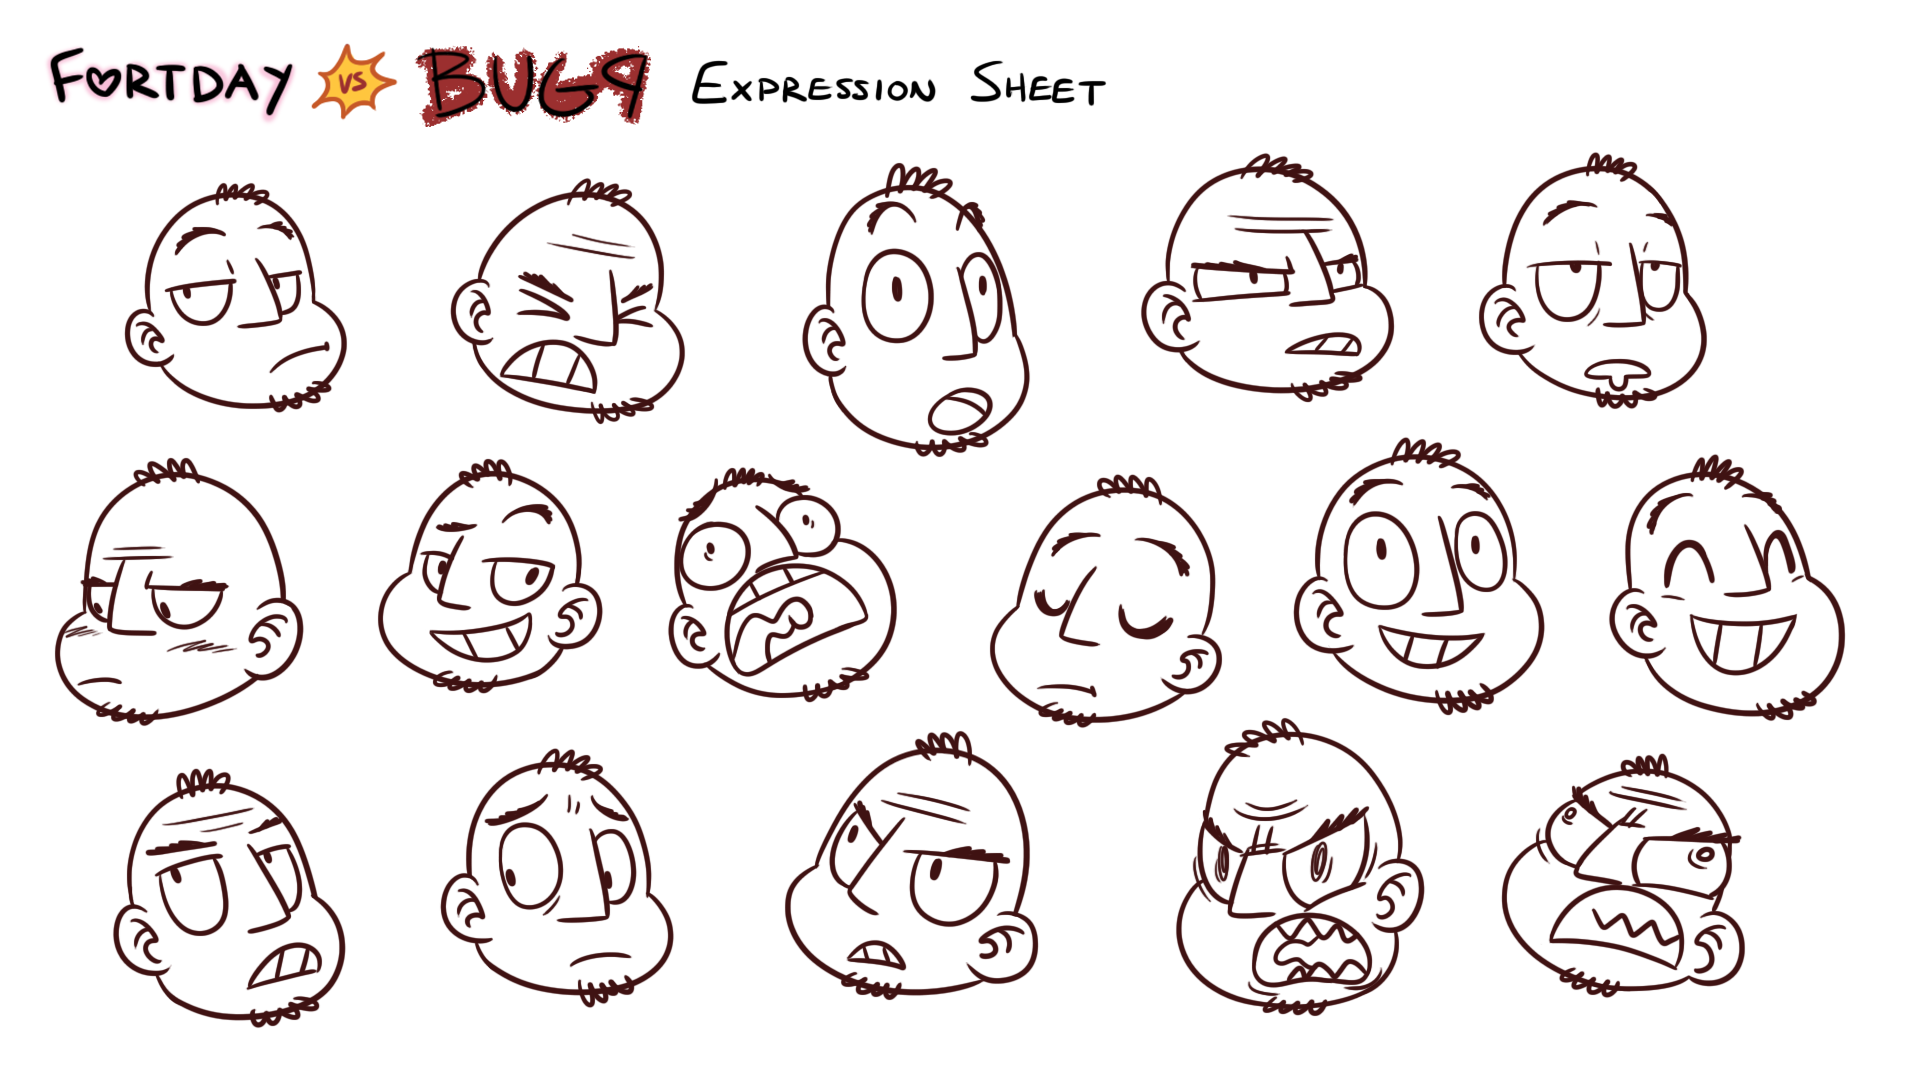 8. BUGP Expression Sheet.png